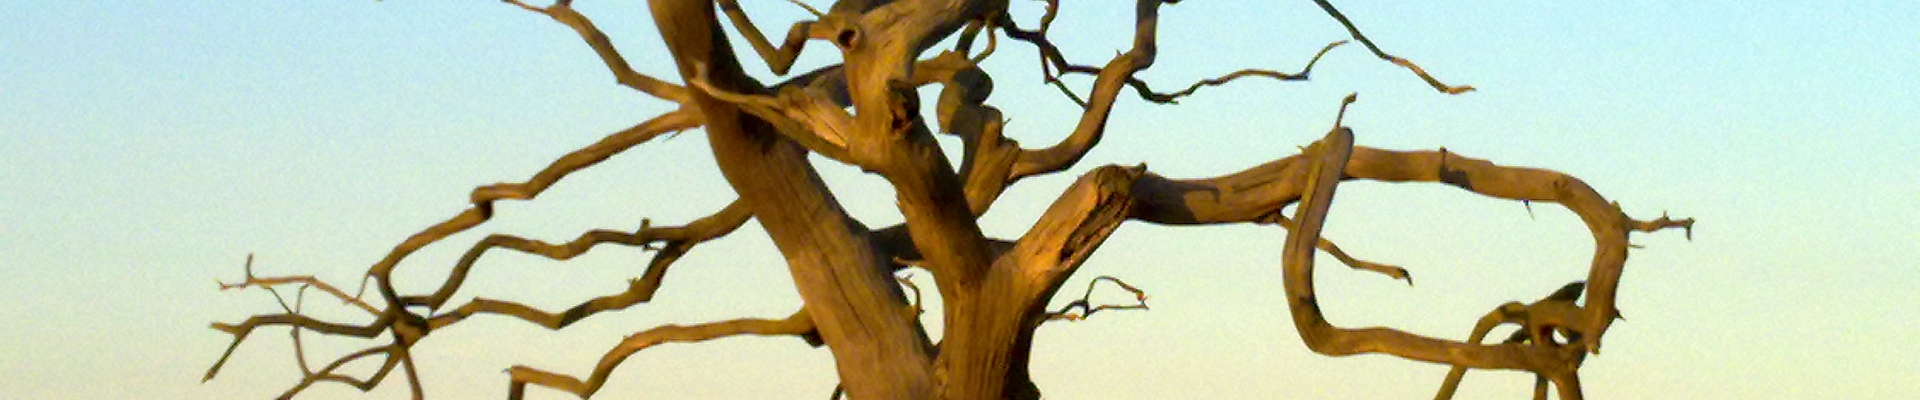 gnarled tree River Alde Suffolk by Lindsay Want